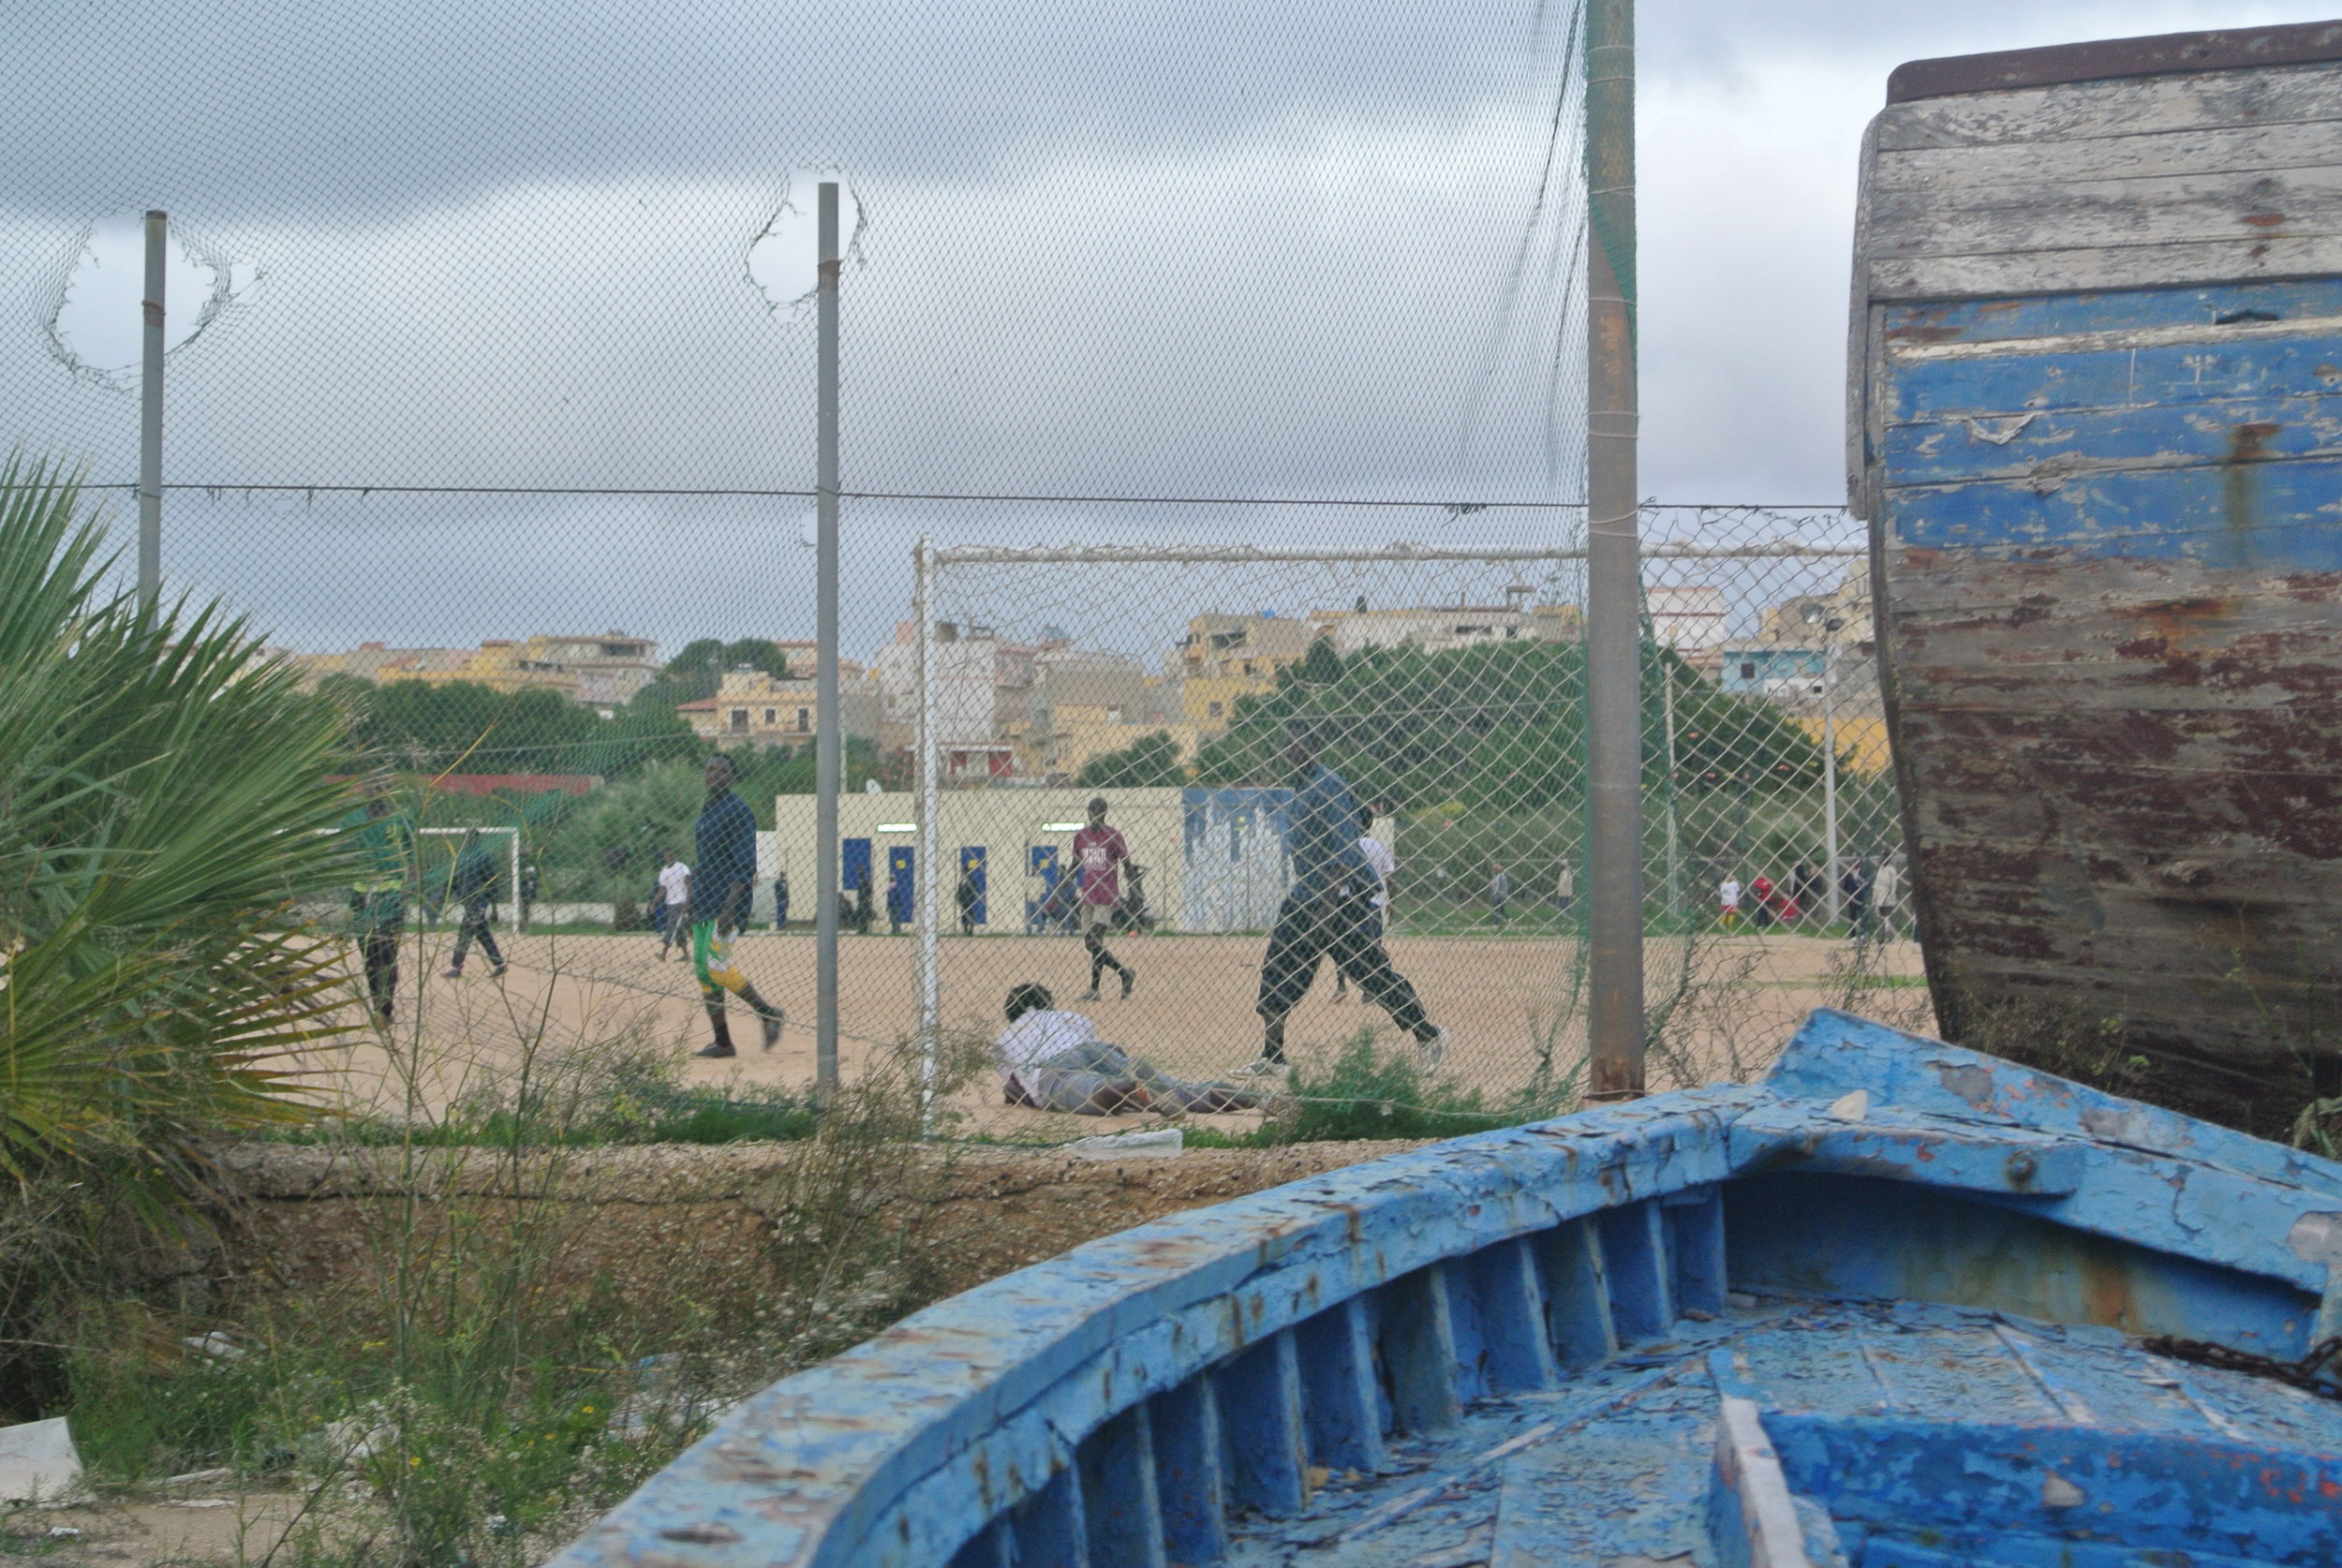 The Guinea v. Senegal football match in the port. Lampedusa, Italy; November 2016. © Pamela Kerpius